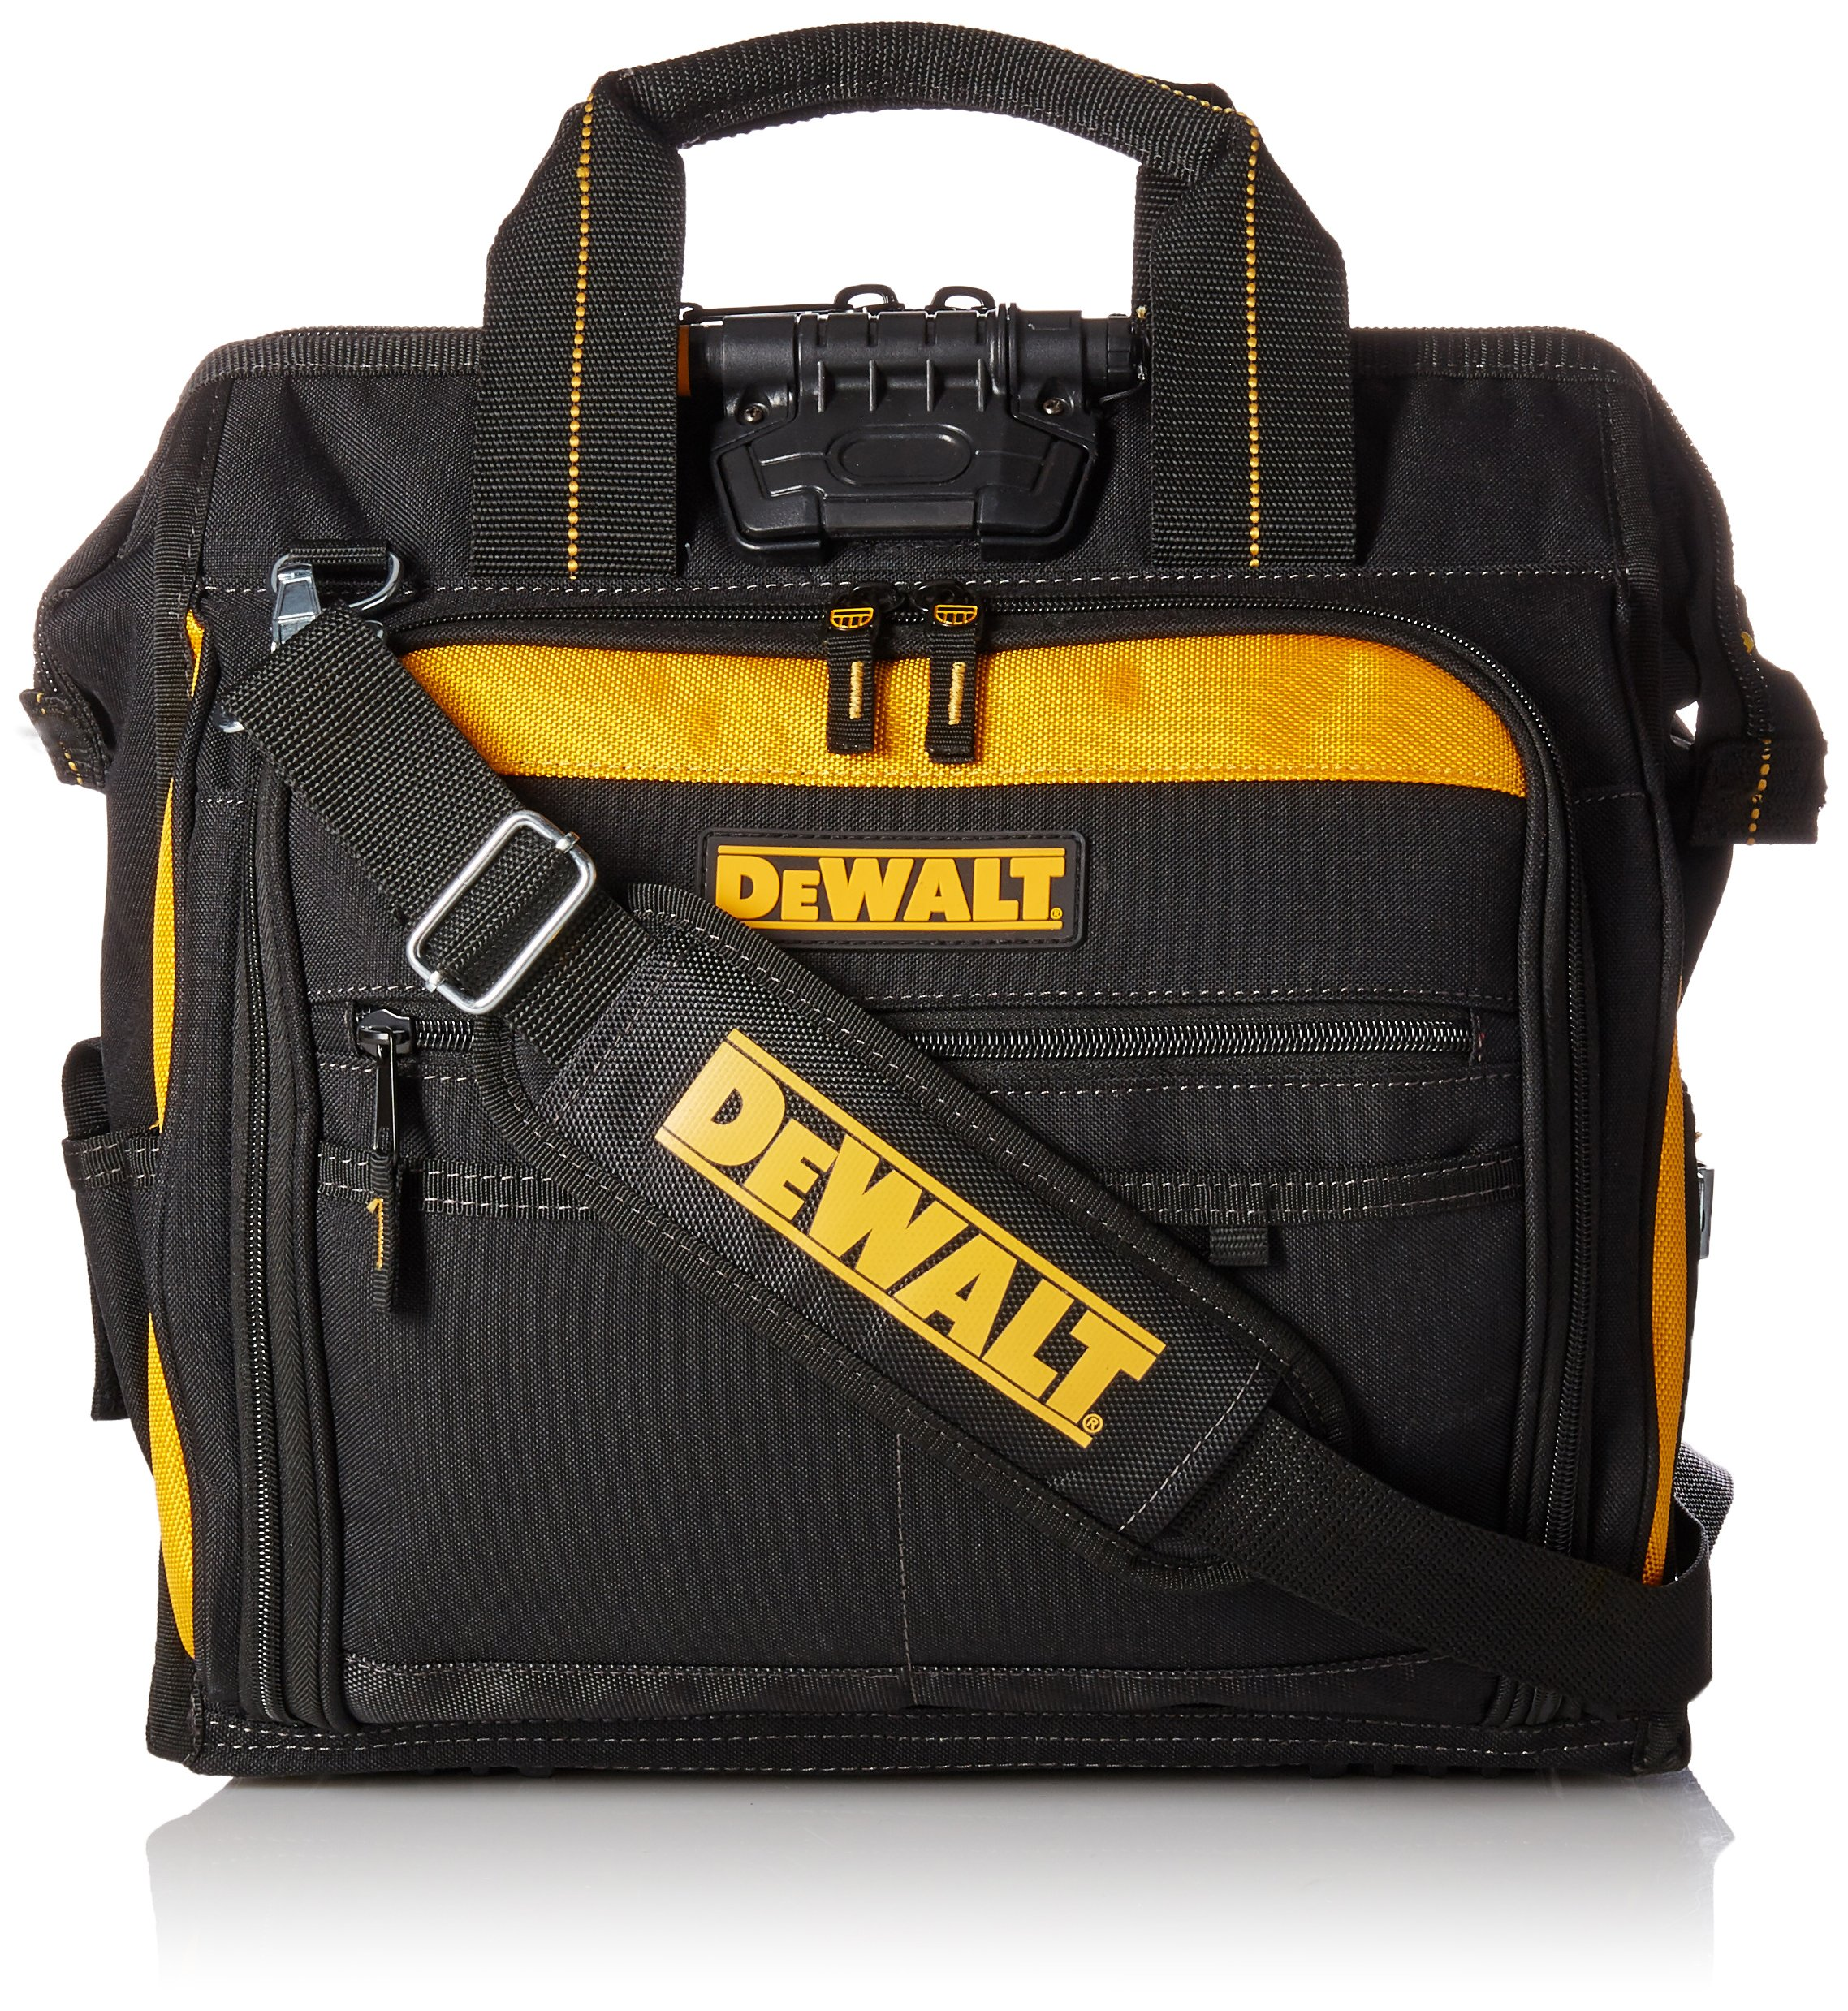 DEWALT Available DGL573 Lighted Technician's Tool Bag, Black/Yellow